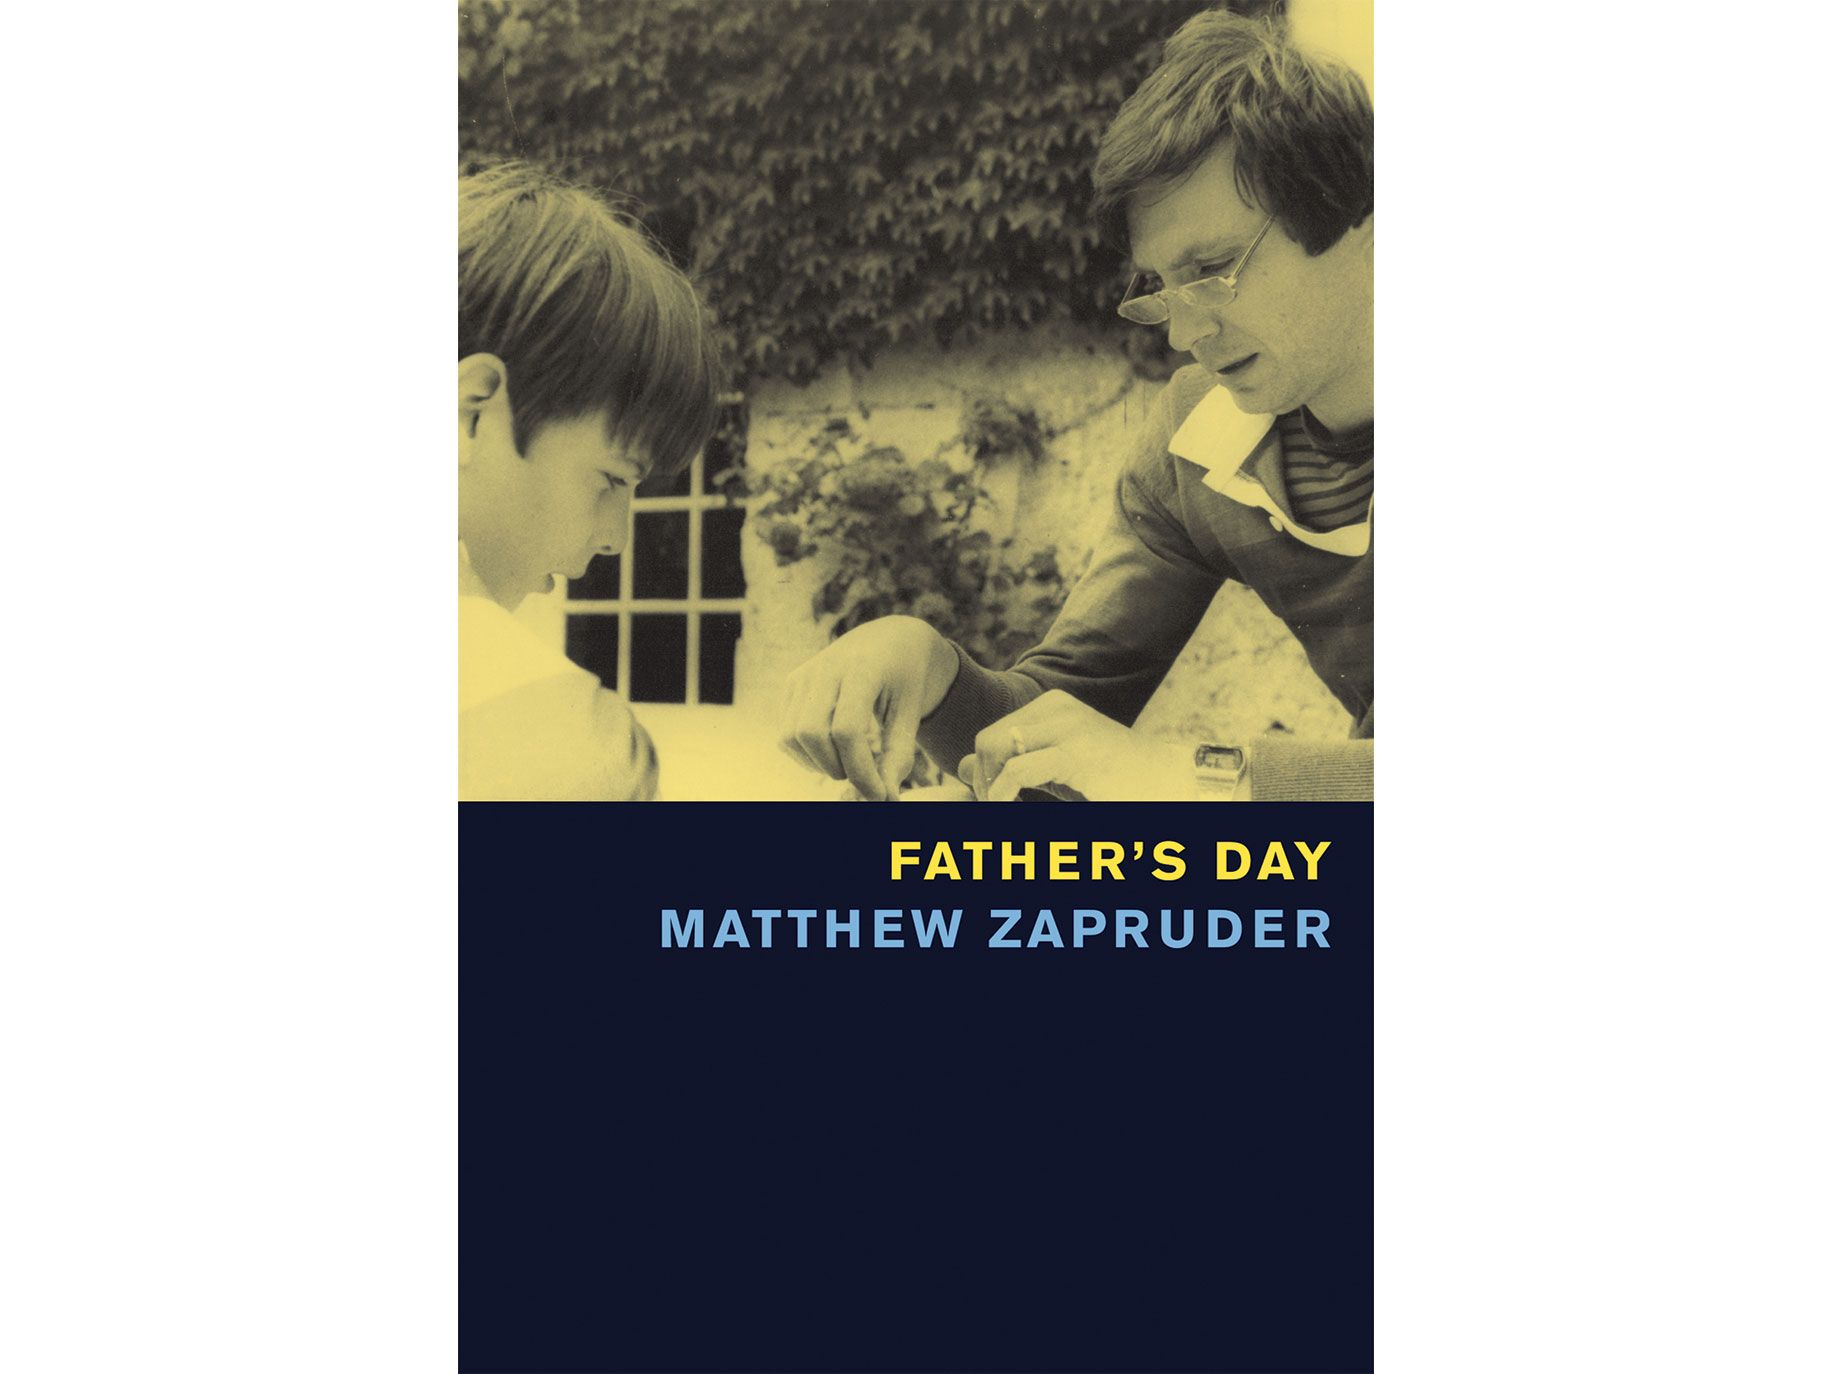 Father's Day by Matthew Zapruder, Copper Canyon Press, 96 pages, $17